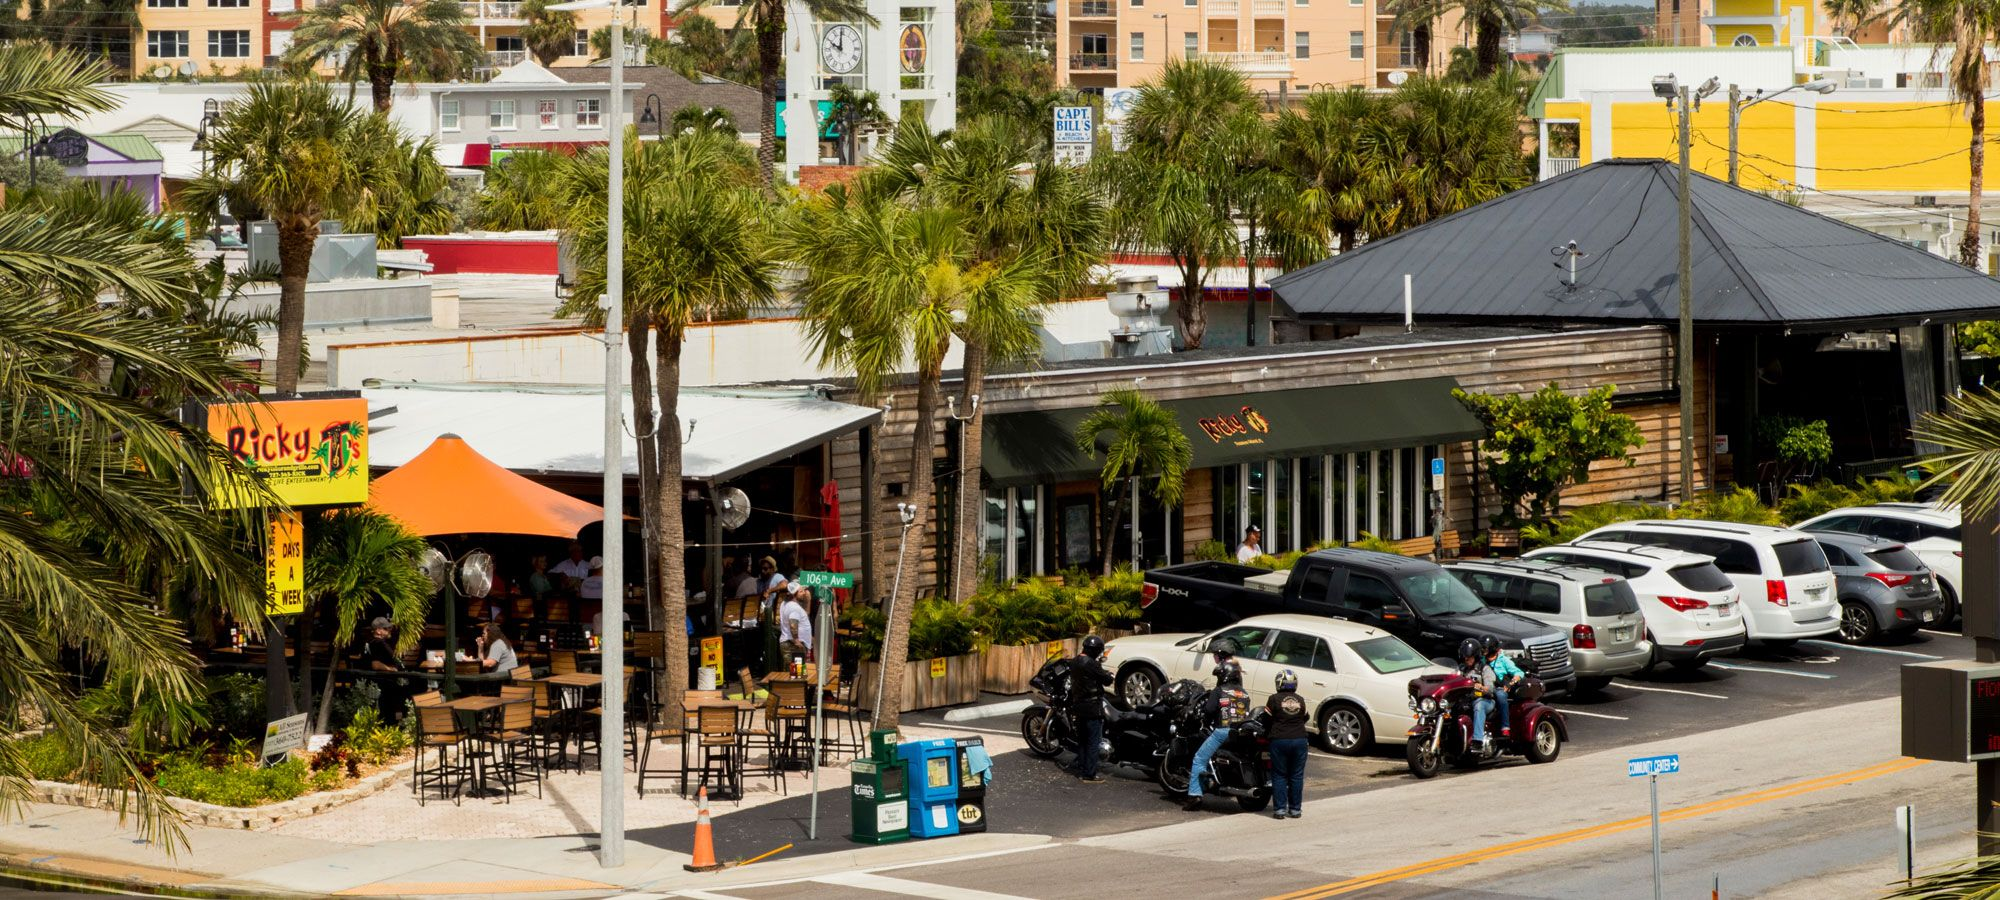 Ricky Ts Bar And Grille Restaurant In Treasure Island Florida